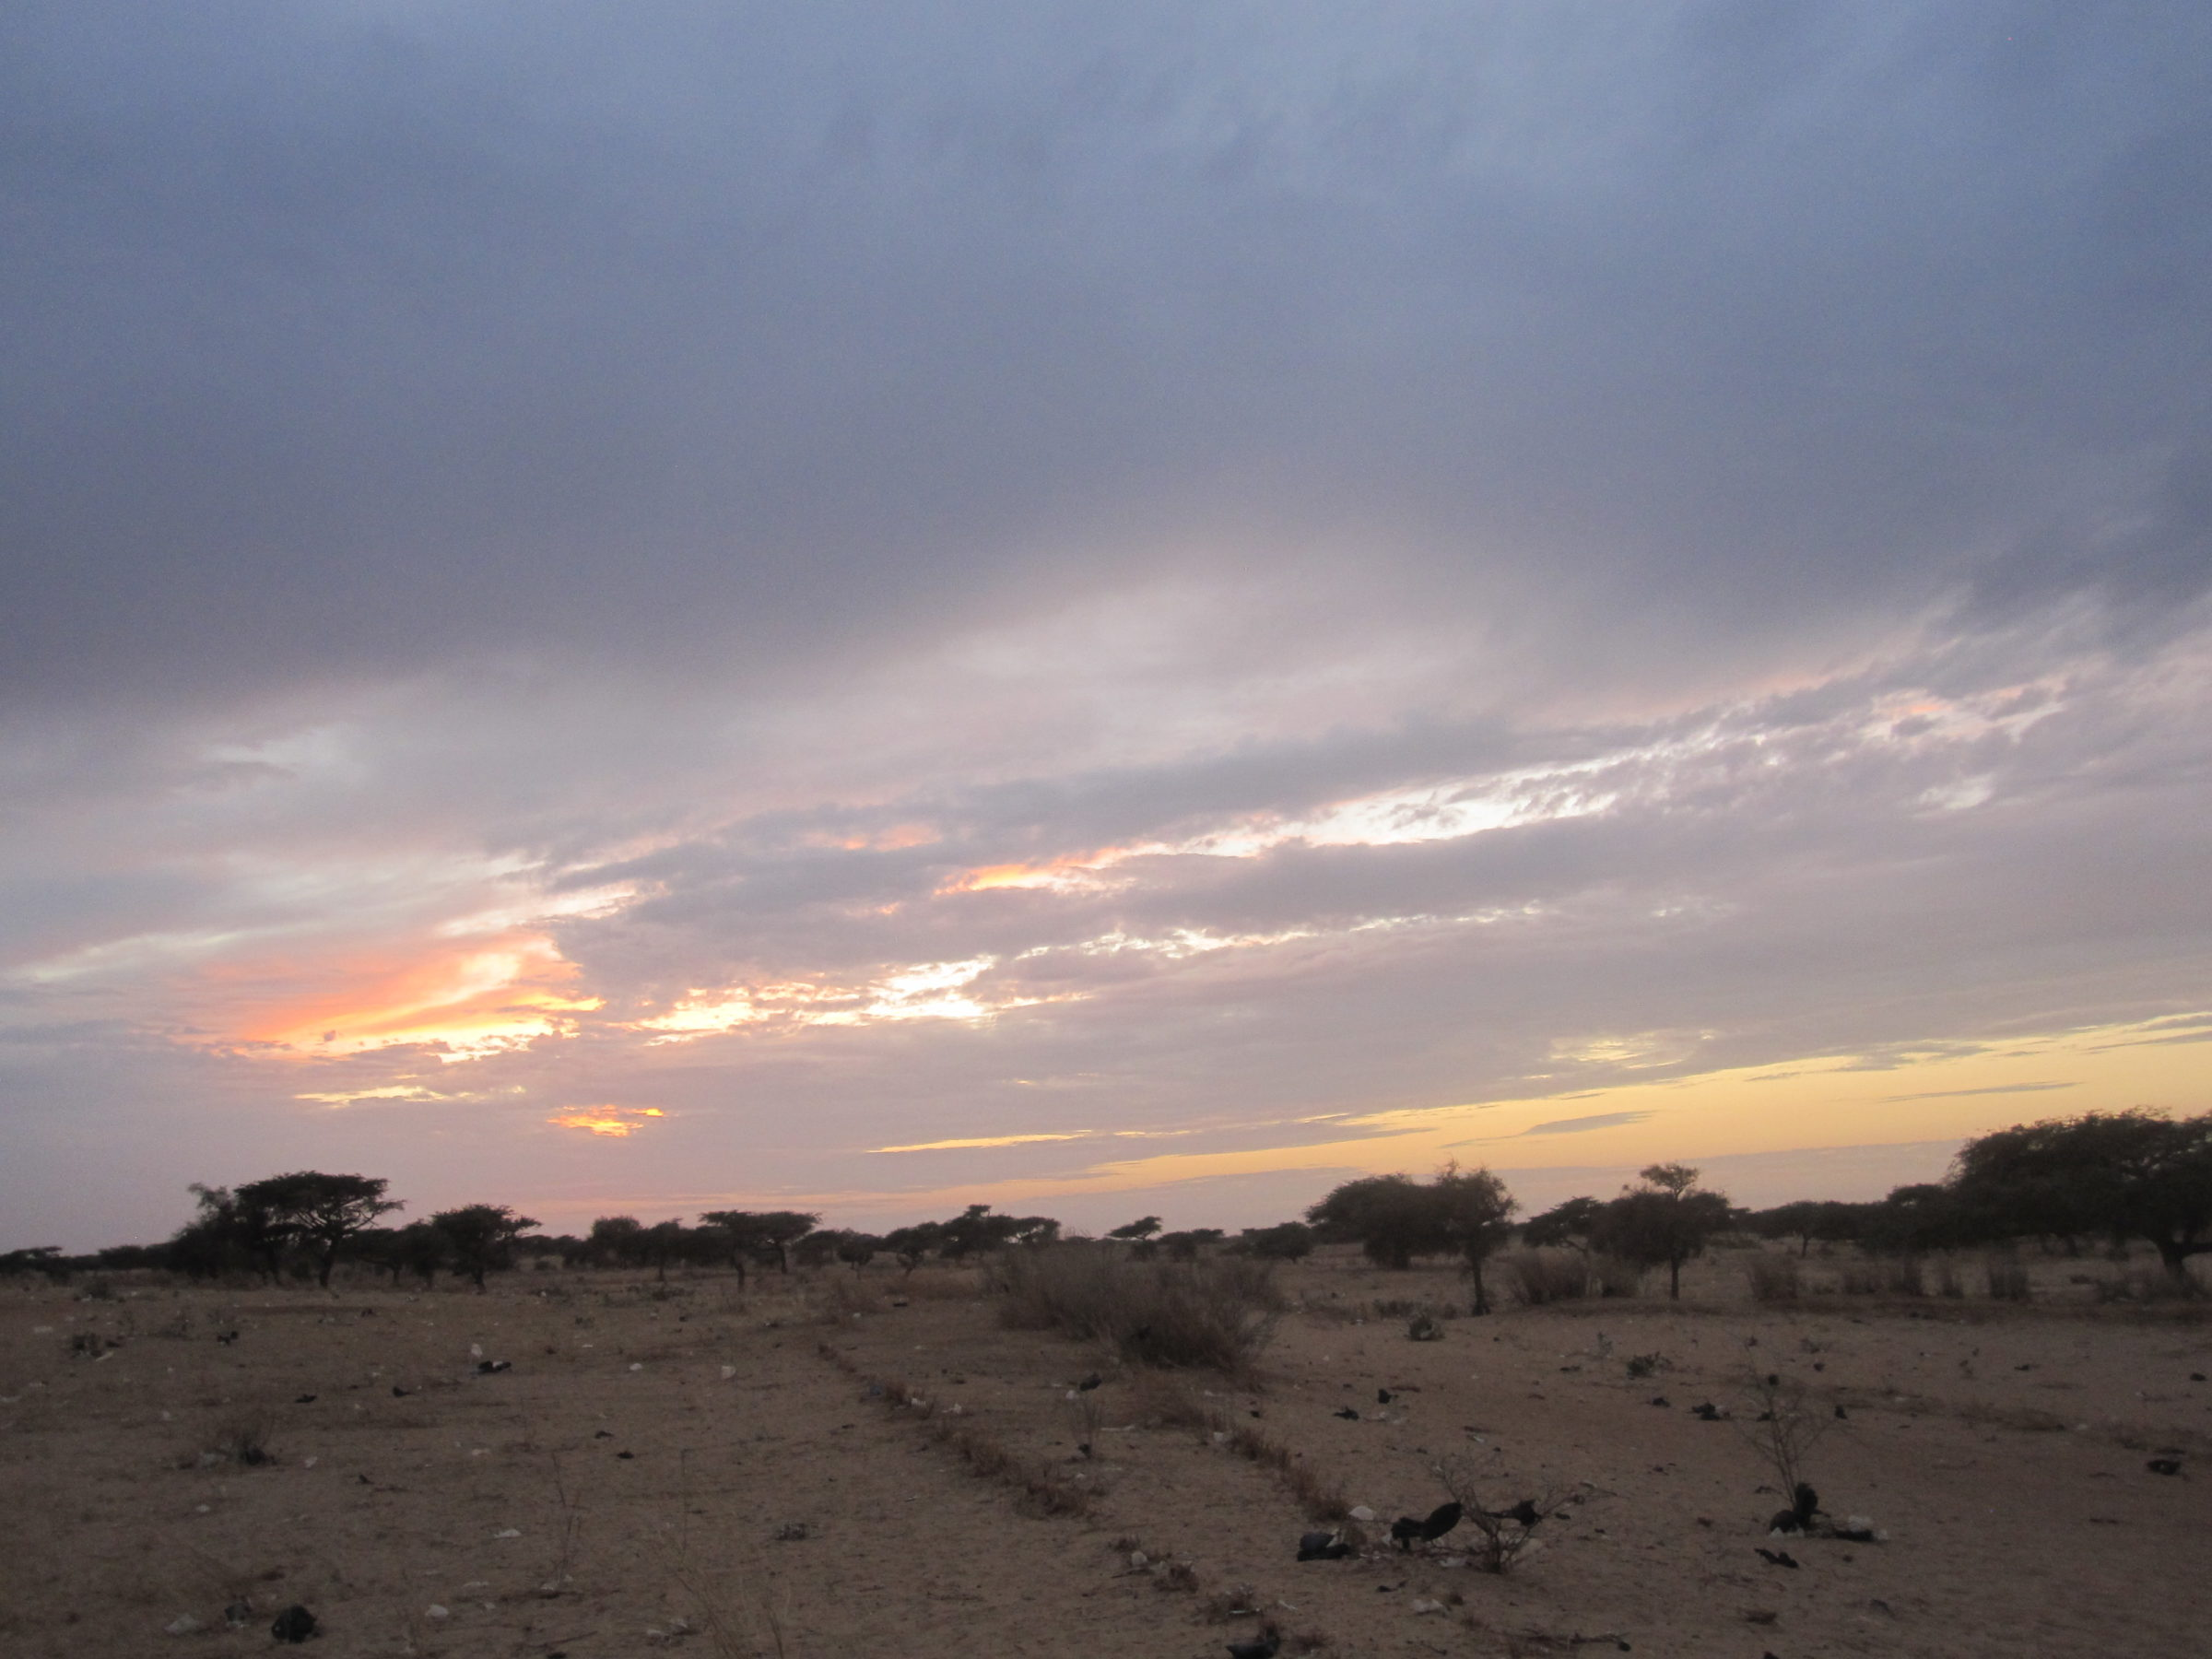 A Saturday Night in the Sahel